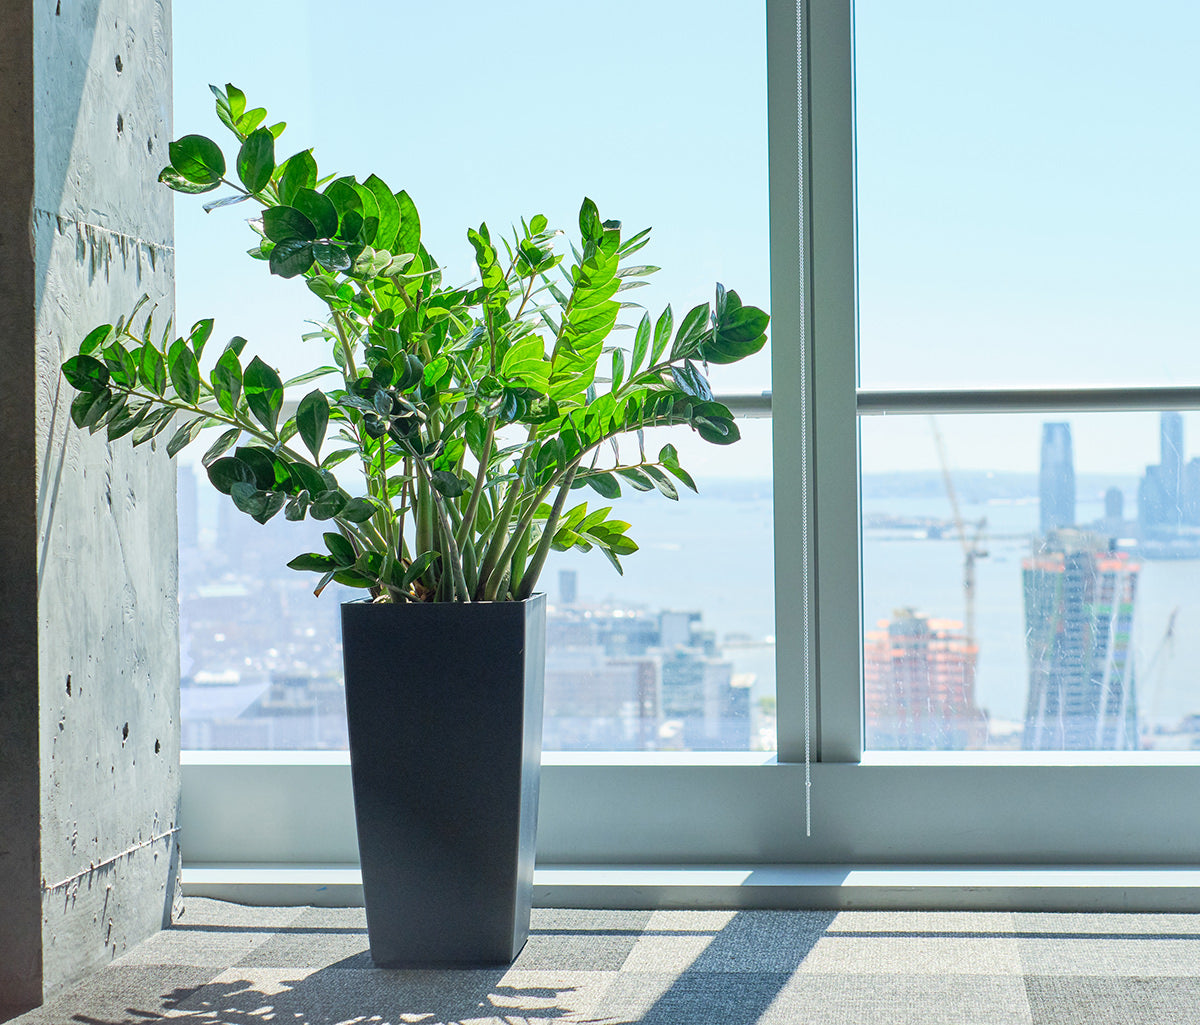 How to choose the right plants for your office